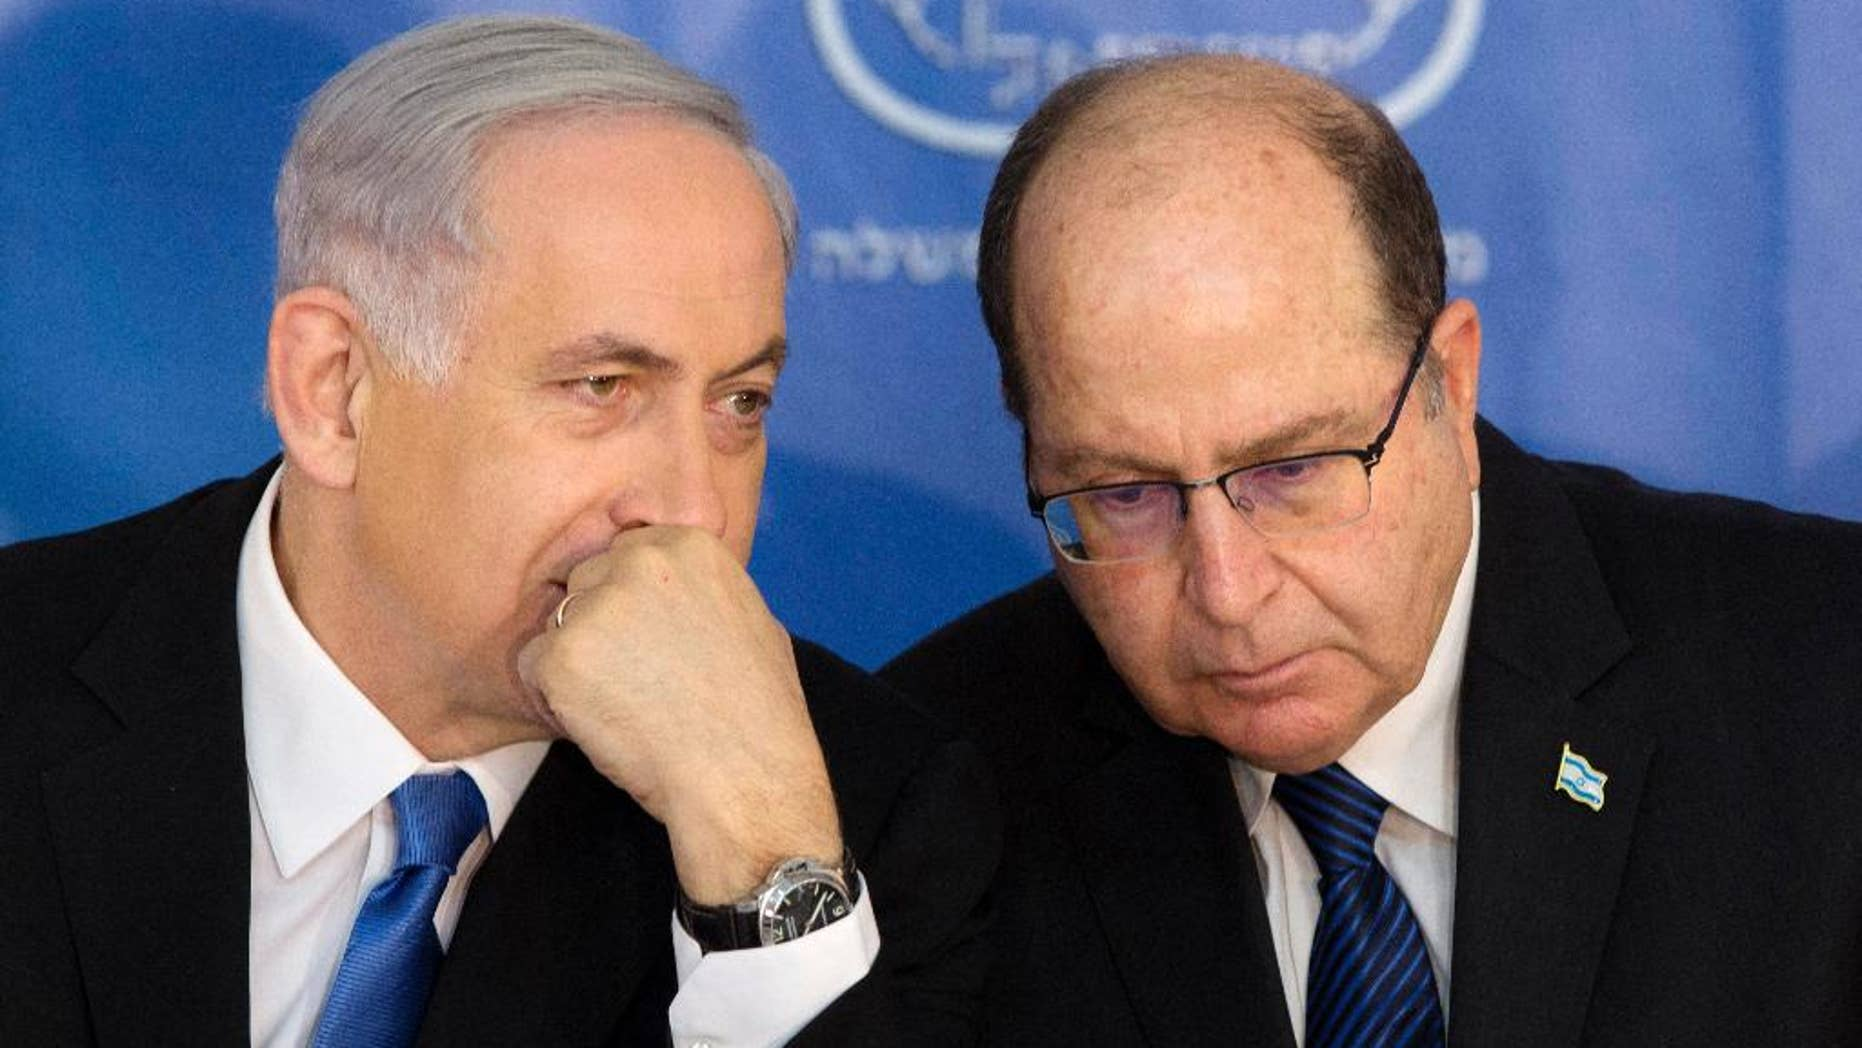 FILE - In this Monday, Feb. 16, 2015 file photo, Israeli Prime Minister Benjamin Netanyahu, left, speaks with Israel's Defense Minister Moshe Yaalon during a ceremony for new Israeli Chief of Staff Gadi Eizenkot at the Prime Minister's office in Jerusalem. Israel's newly resigned defense minister has accused Prime Minister Benjamin Netanyahu of exaggerating the country's security threats to distract attention from other issues. (AP Photo/Sebastian Scheiner, File)